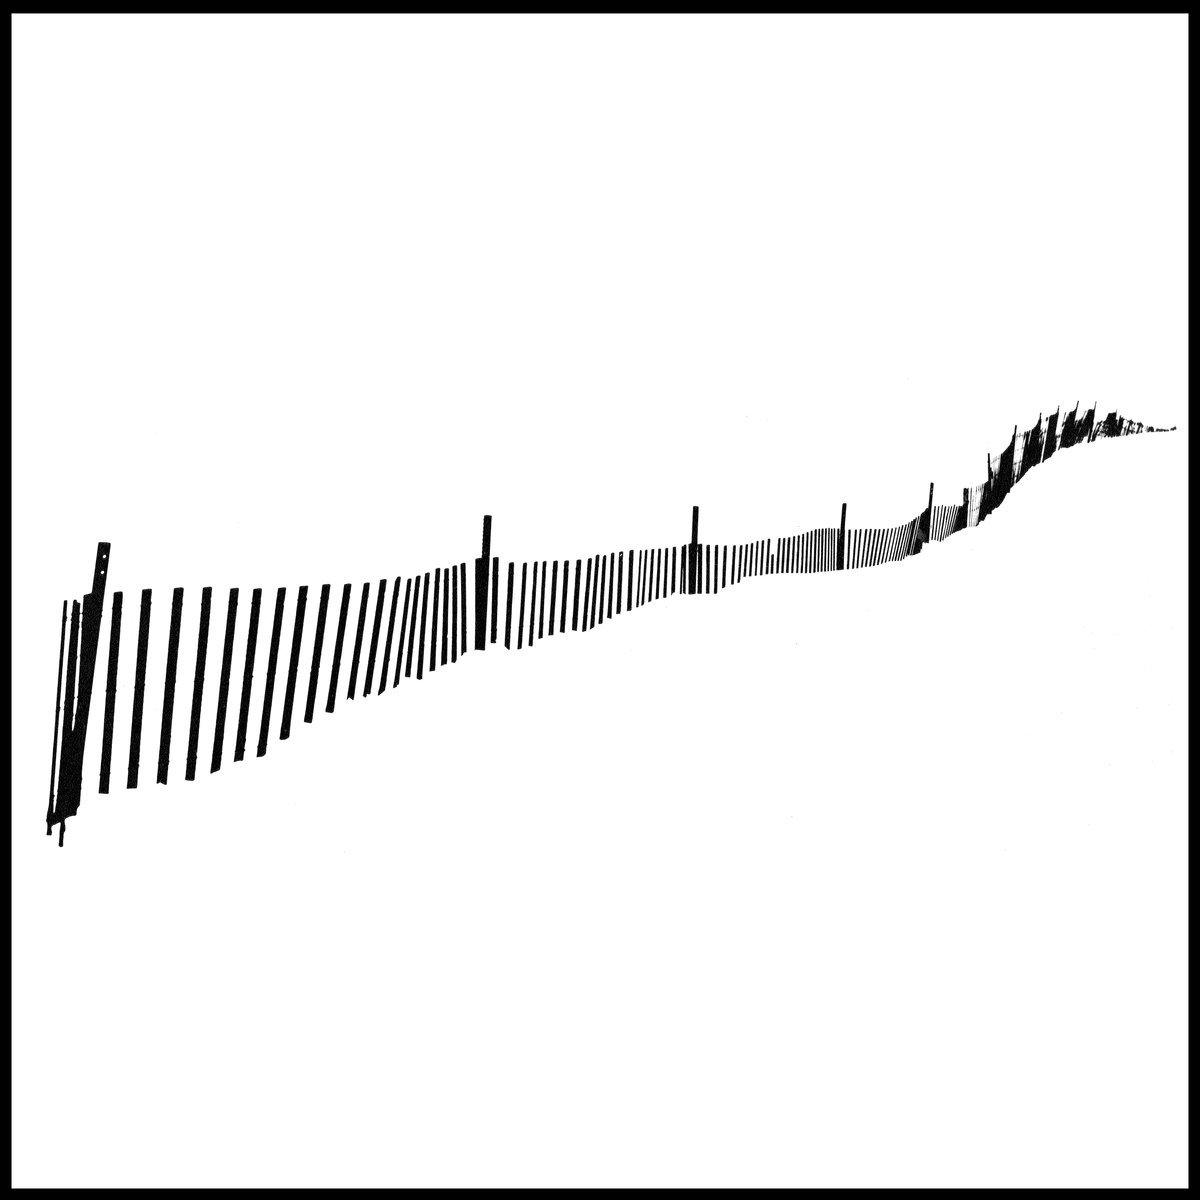 winter pattern album art is a black and white high exposure image of a fence on a beach